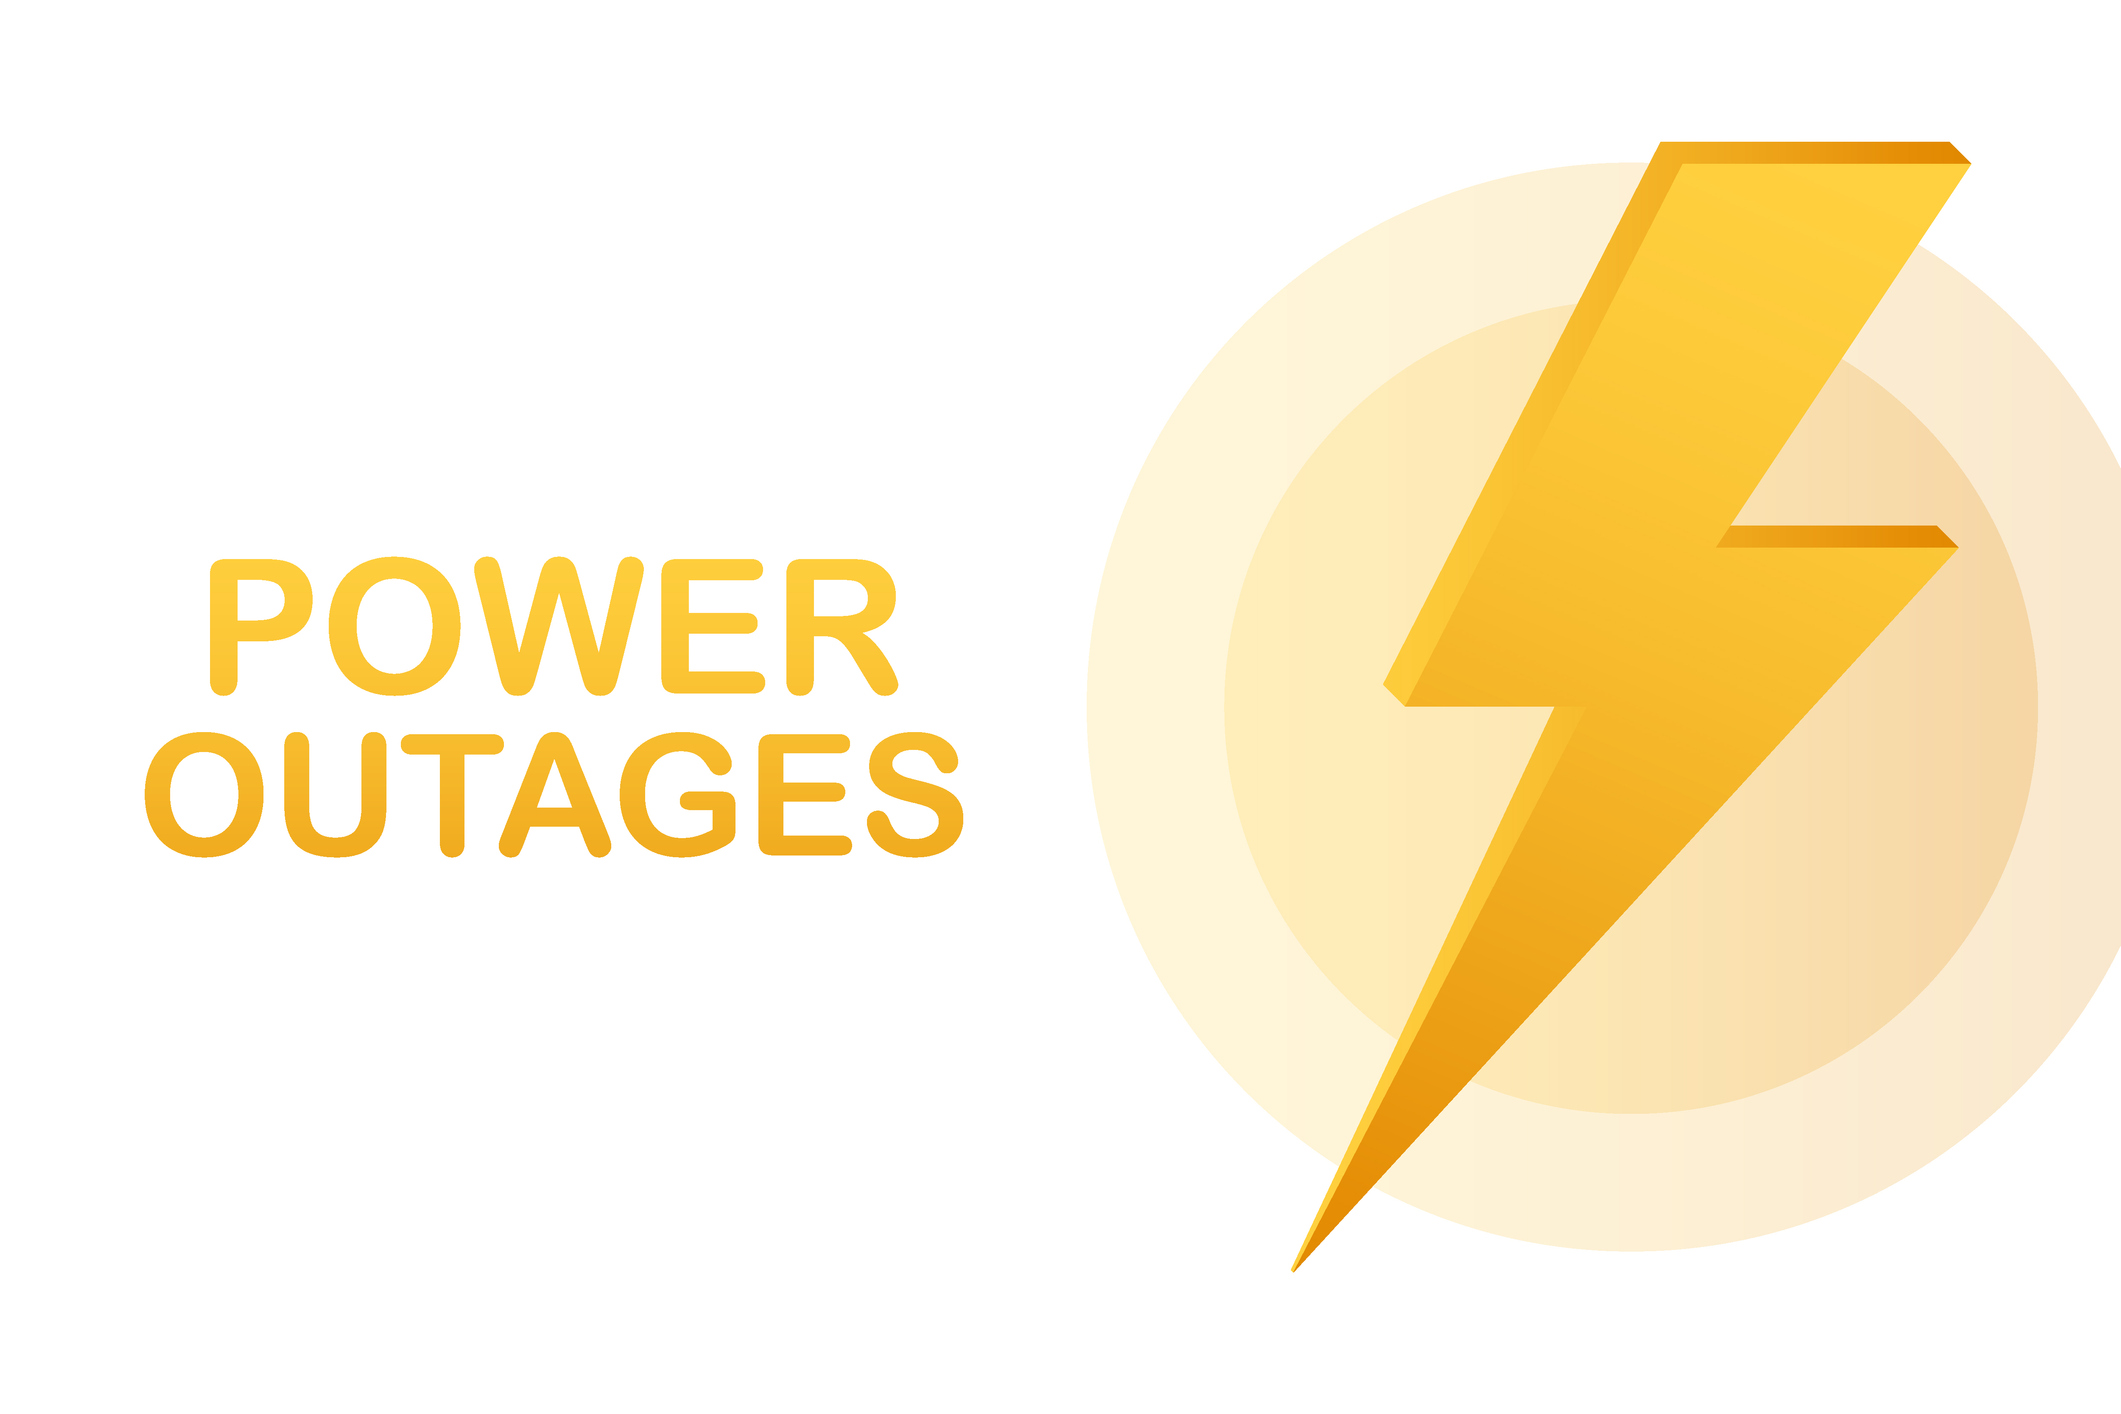 PGE reporting power outages near Oregon City, Beavercreek